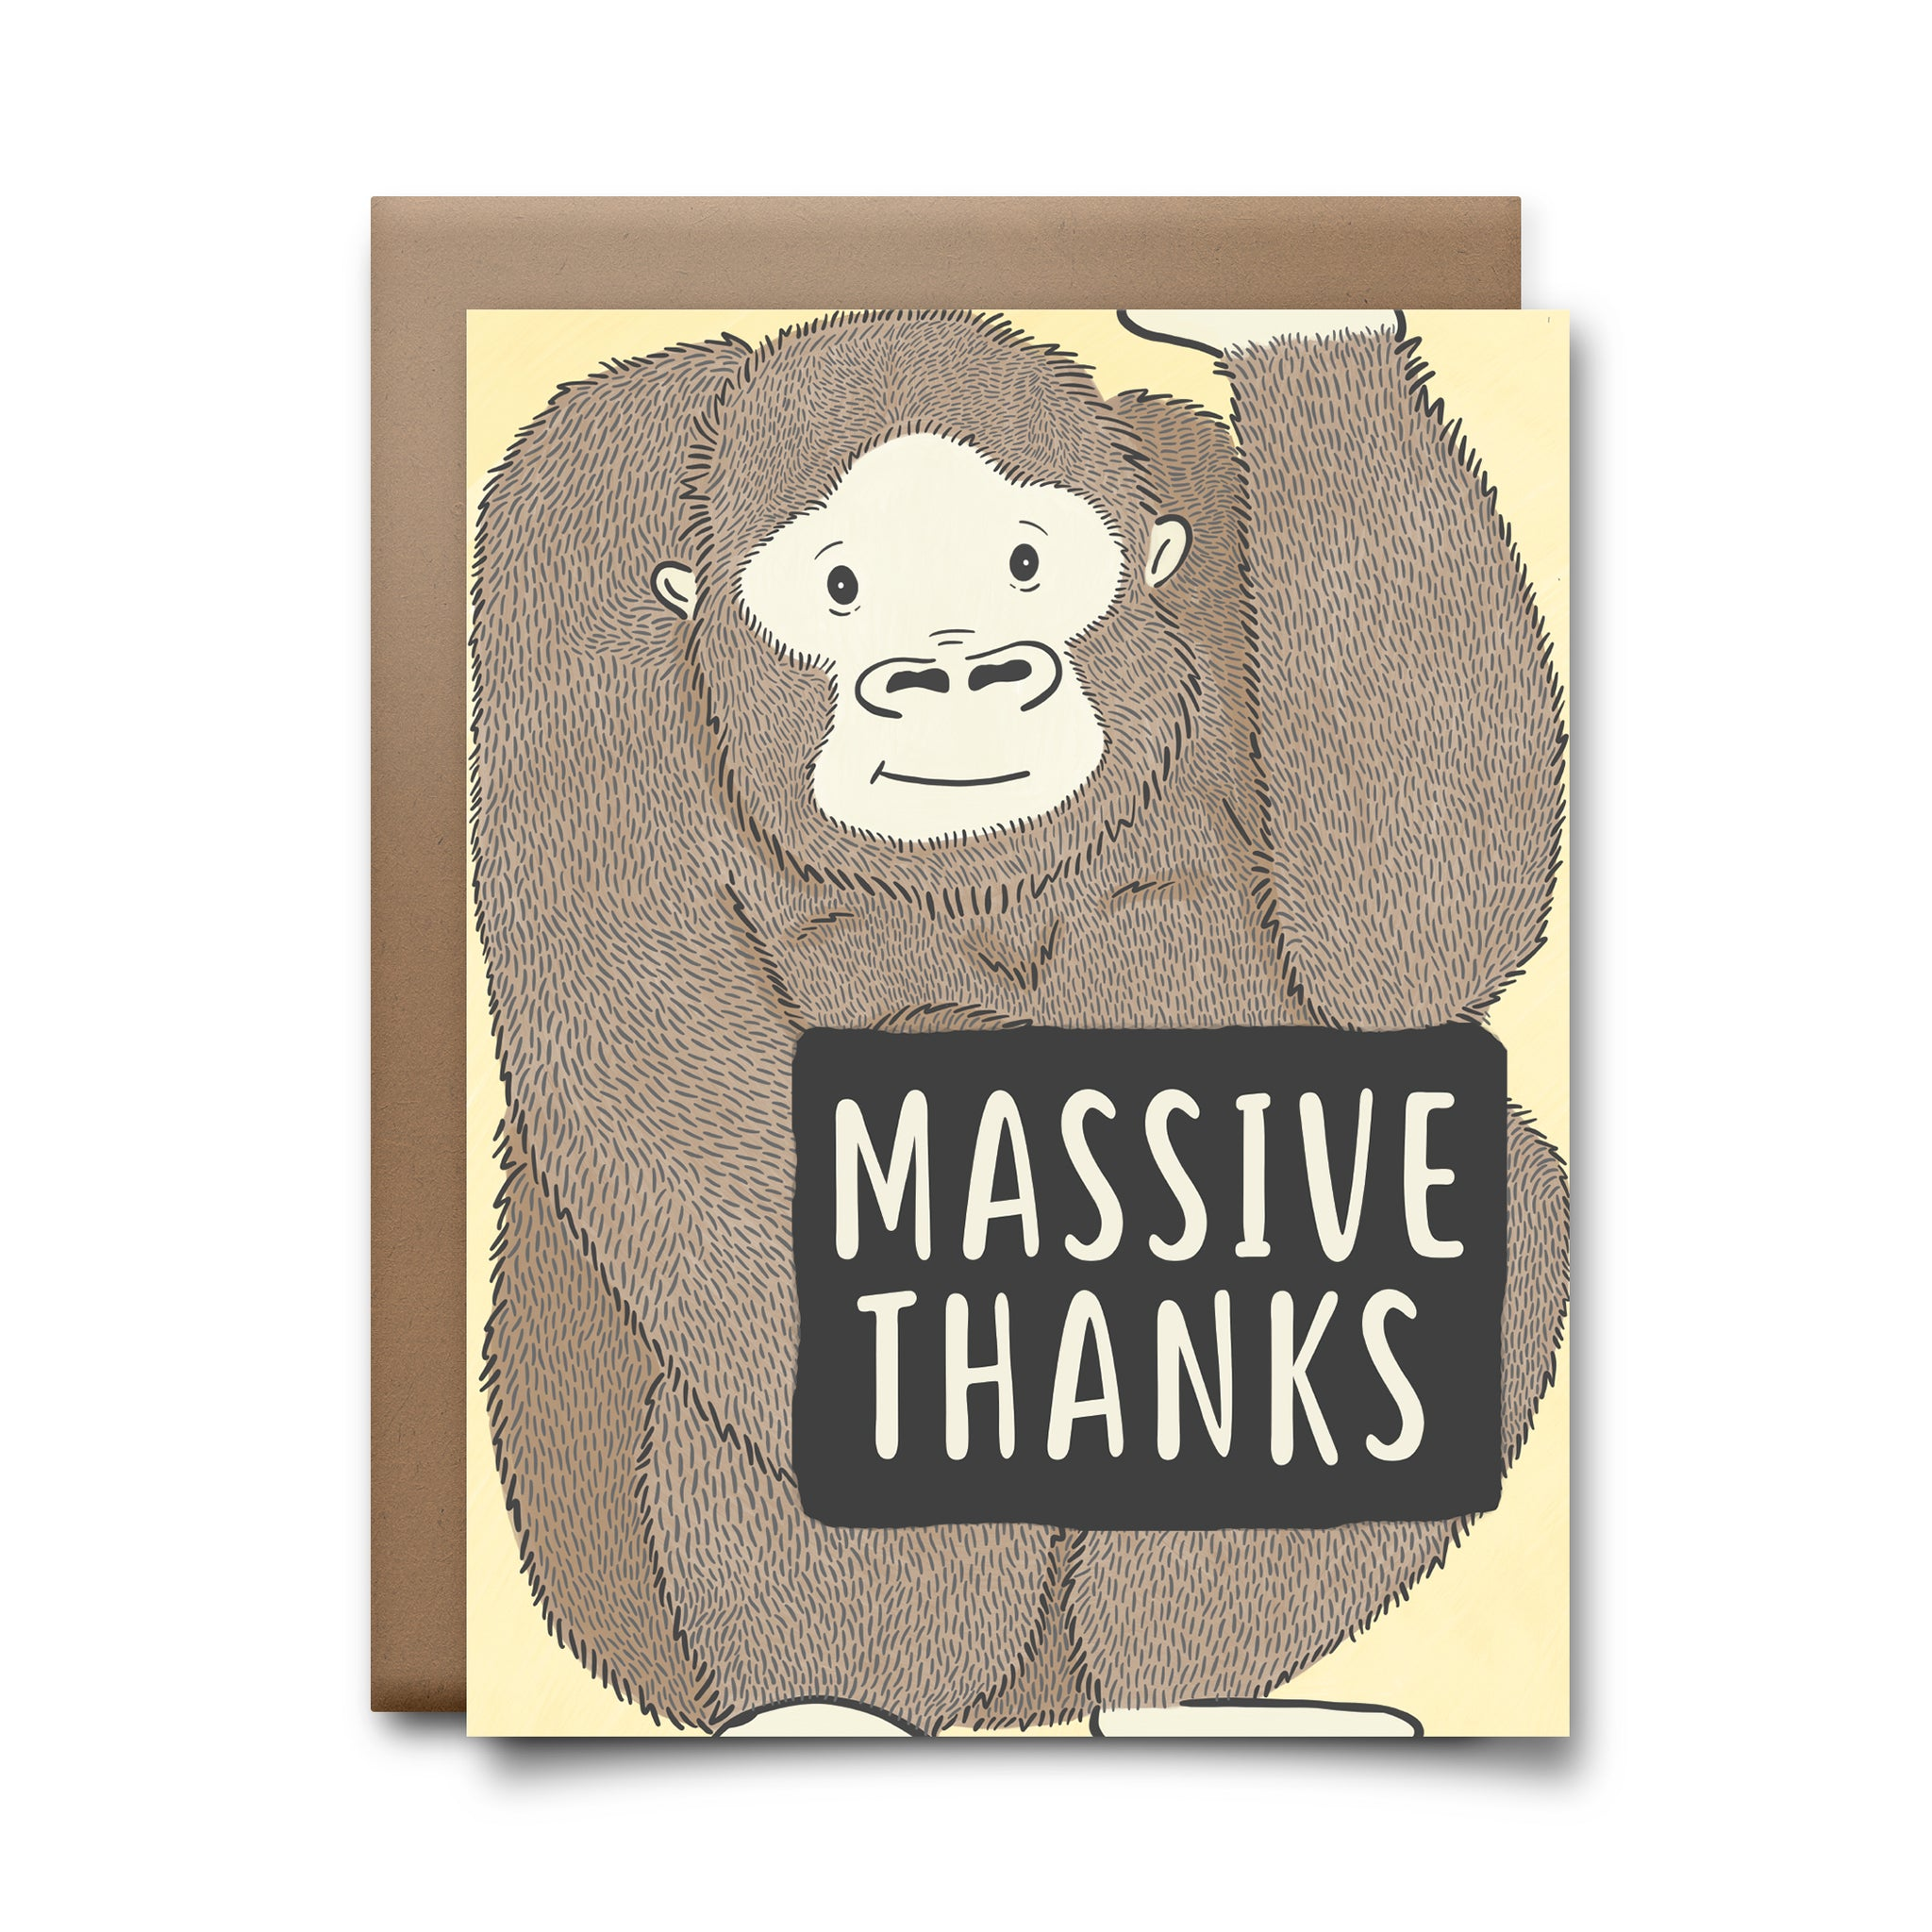 Massive Thanks Greeting Card Choke Shirt Company